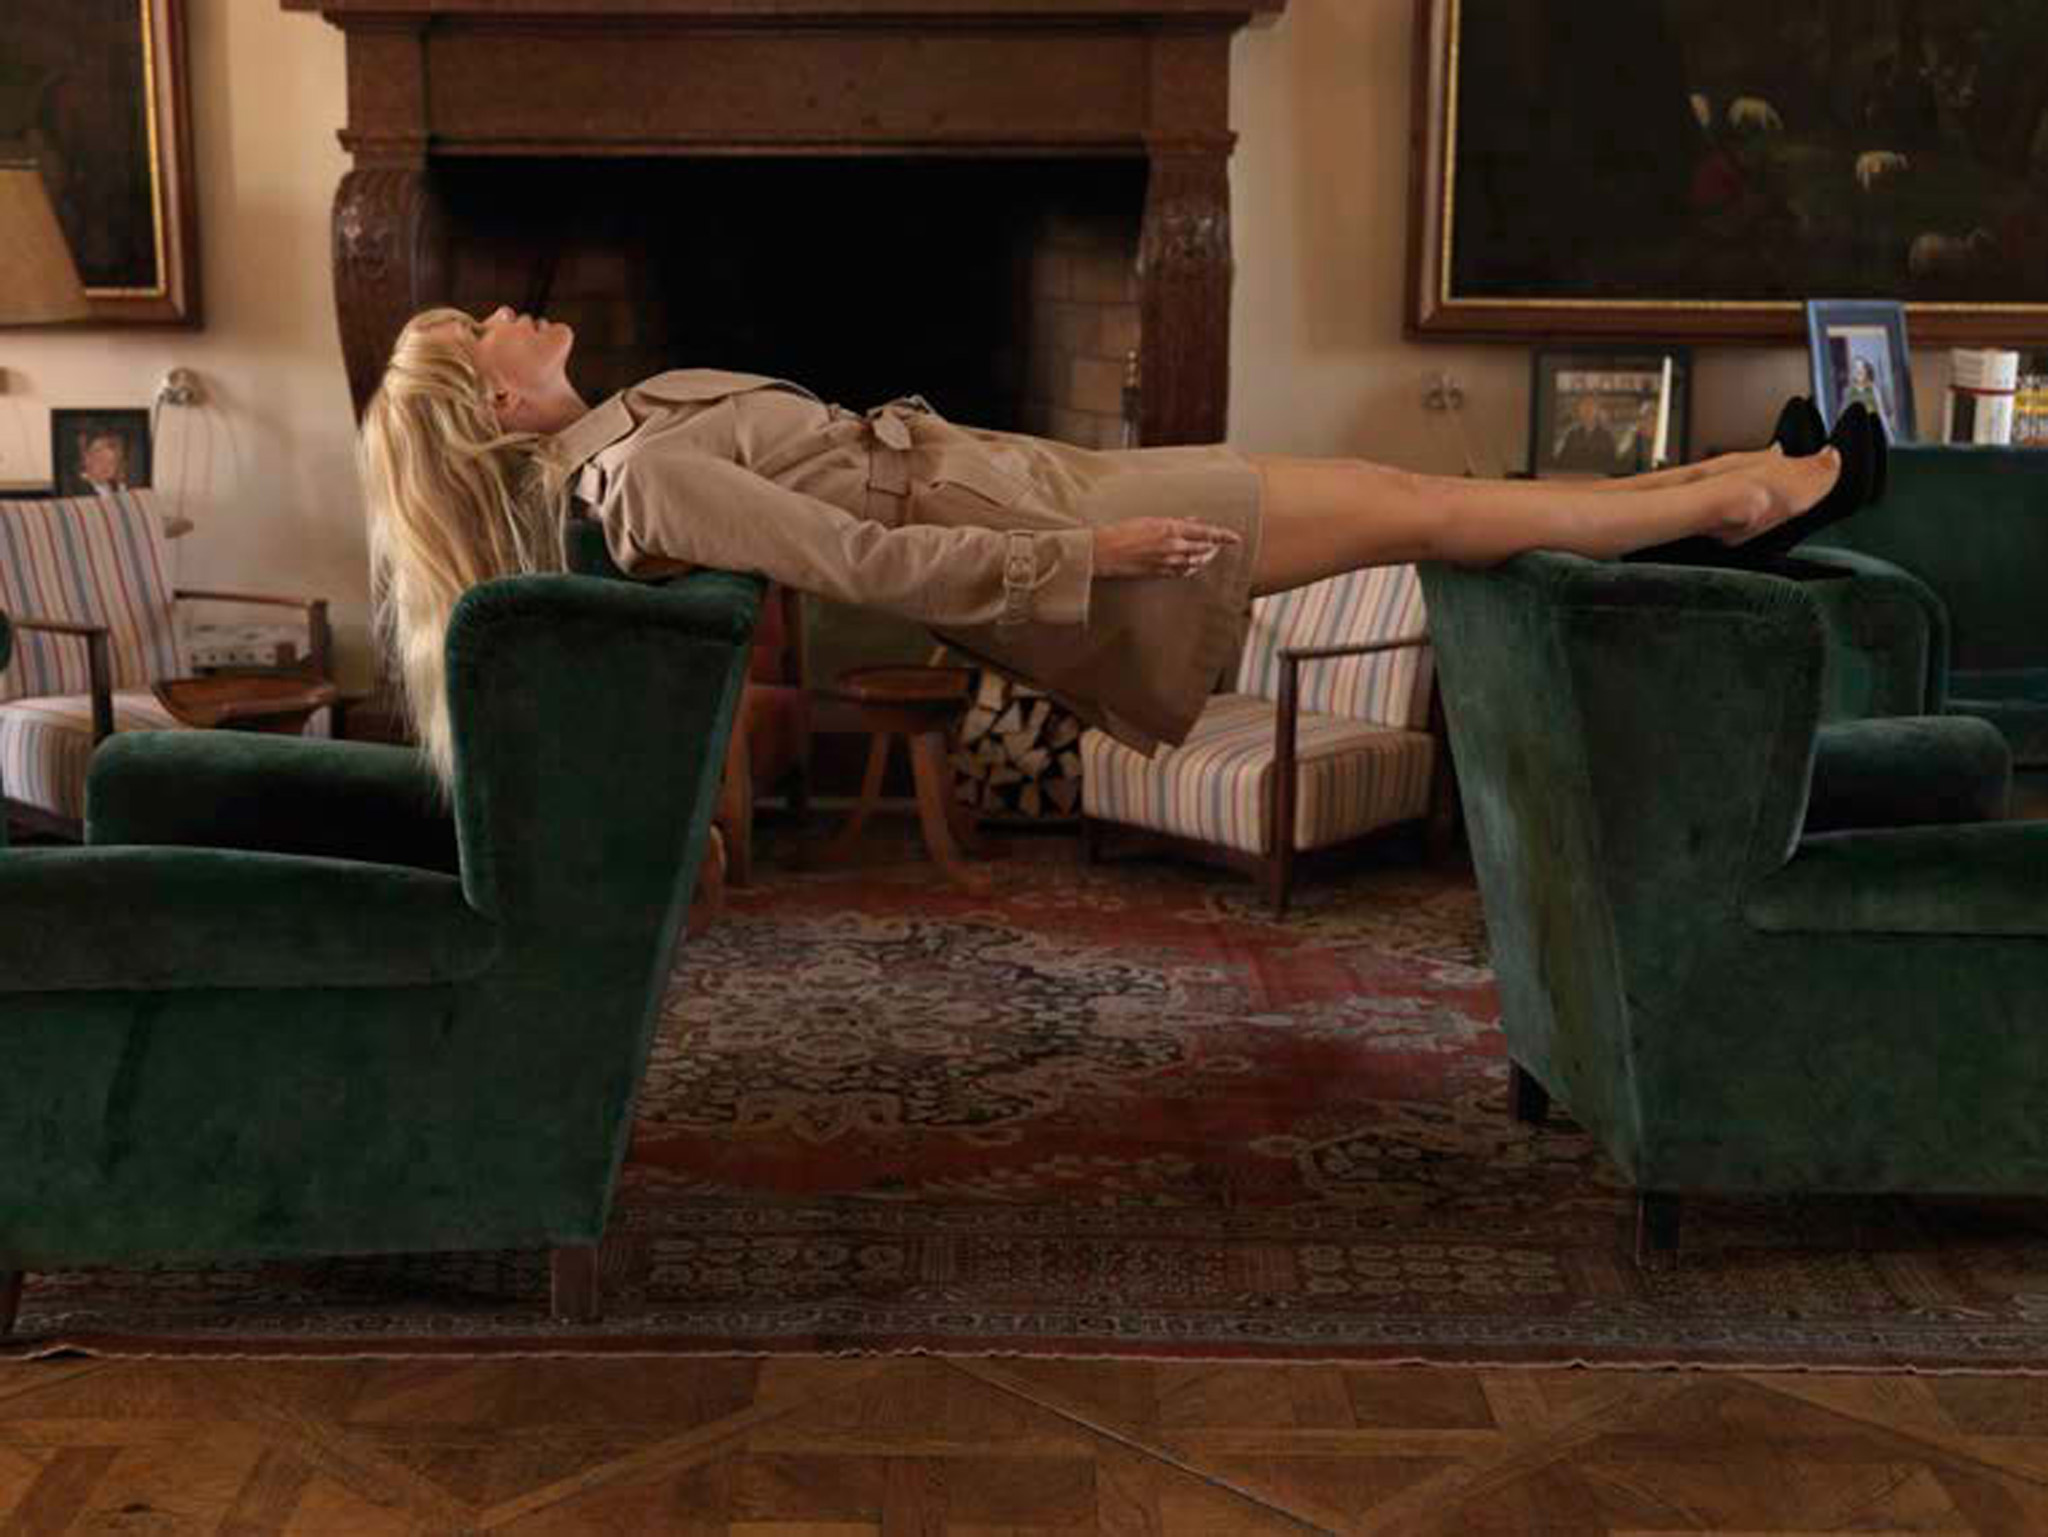 Erwin Wurm Untitled From The Series Claudia Schiffer 2009